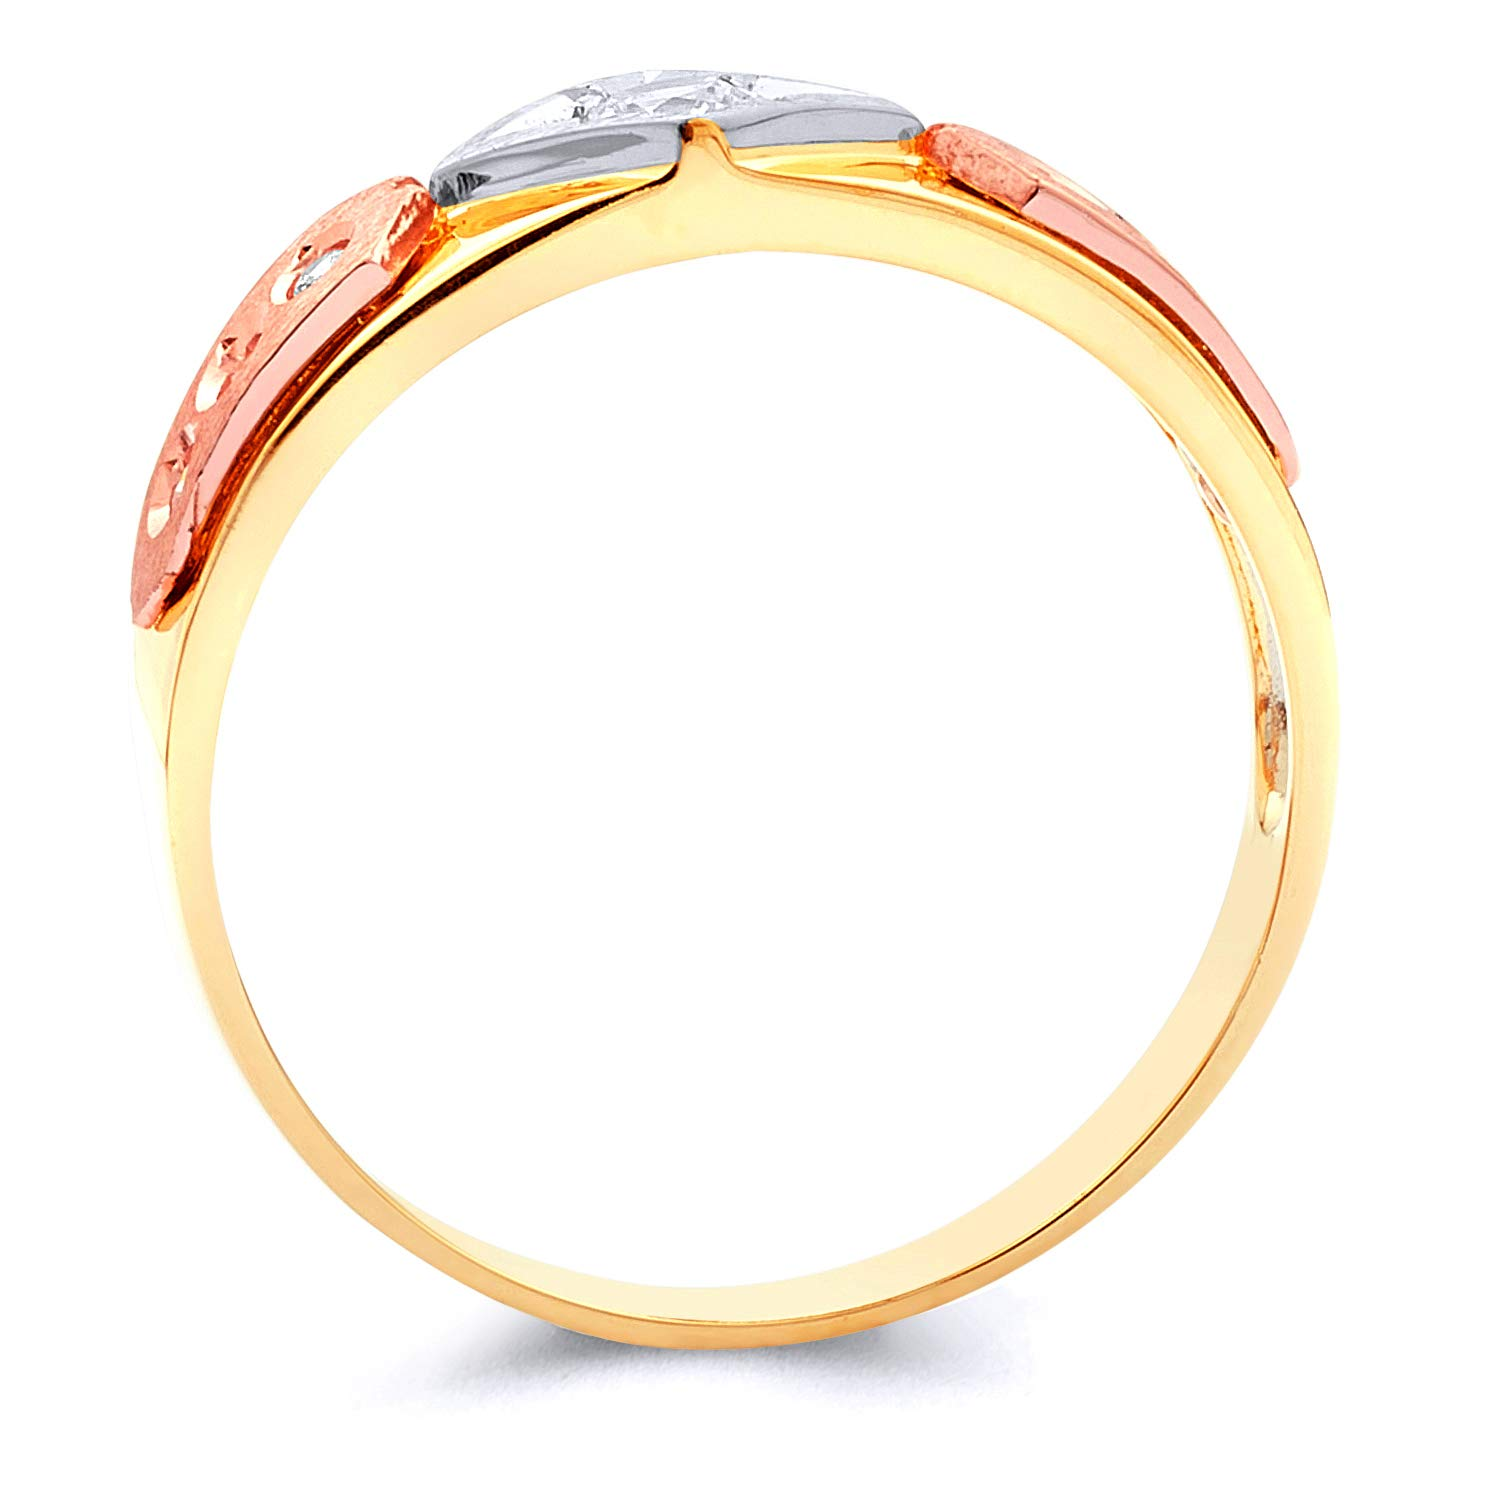 Wellingsale Mens Solid 14k Tri 3 Color Gold Polished CZ Cubic Zirconia Wedding Band Size 10